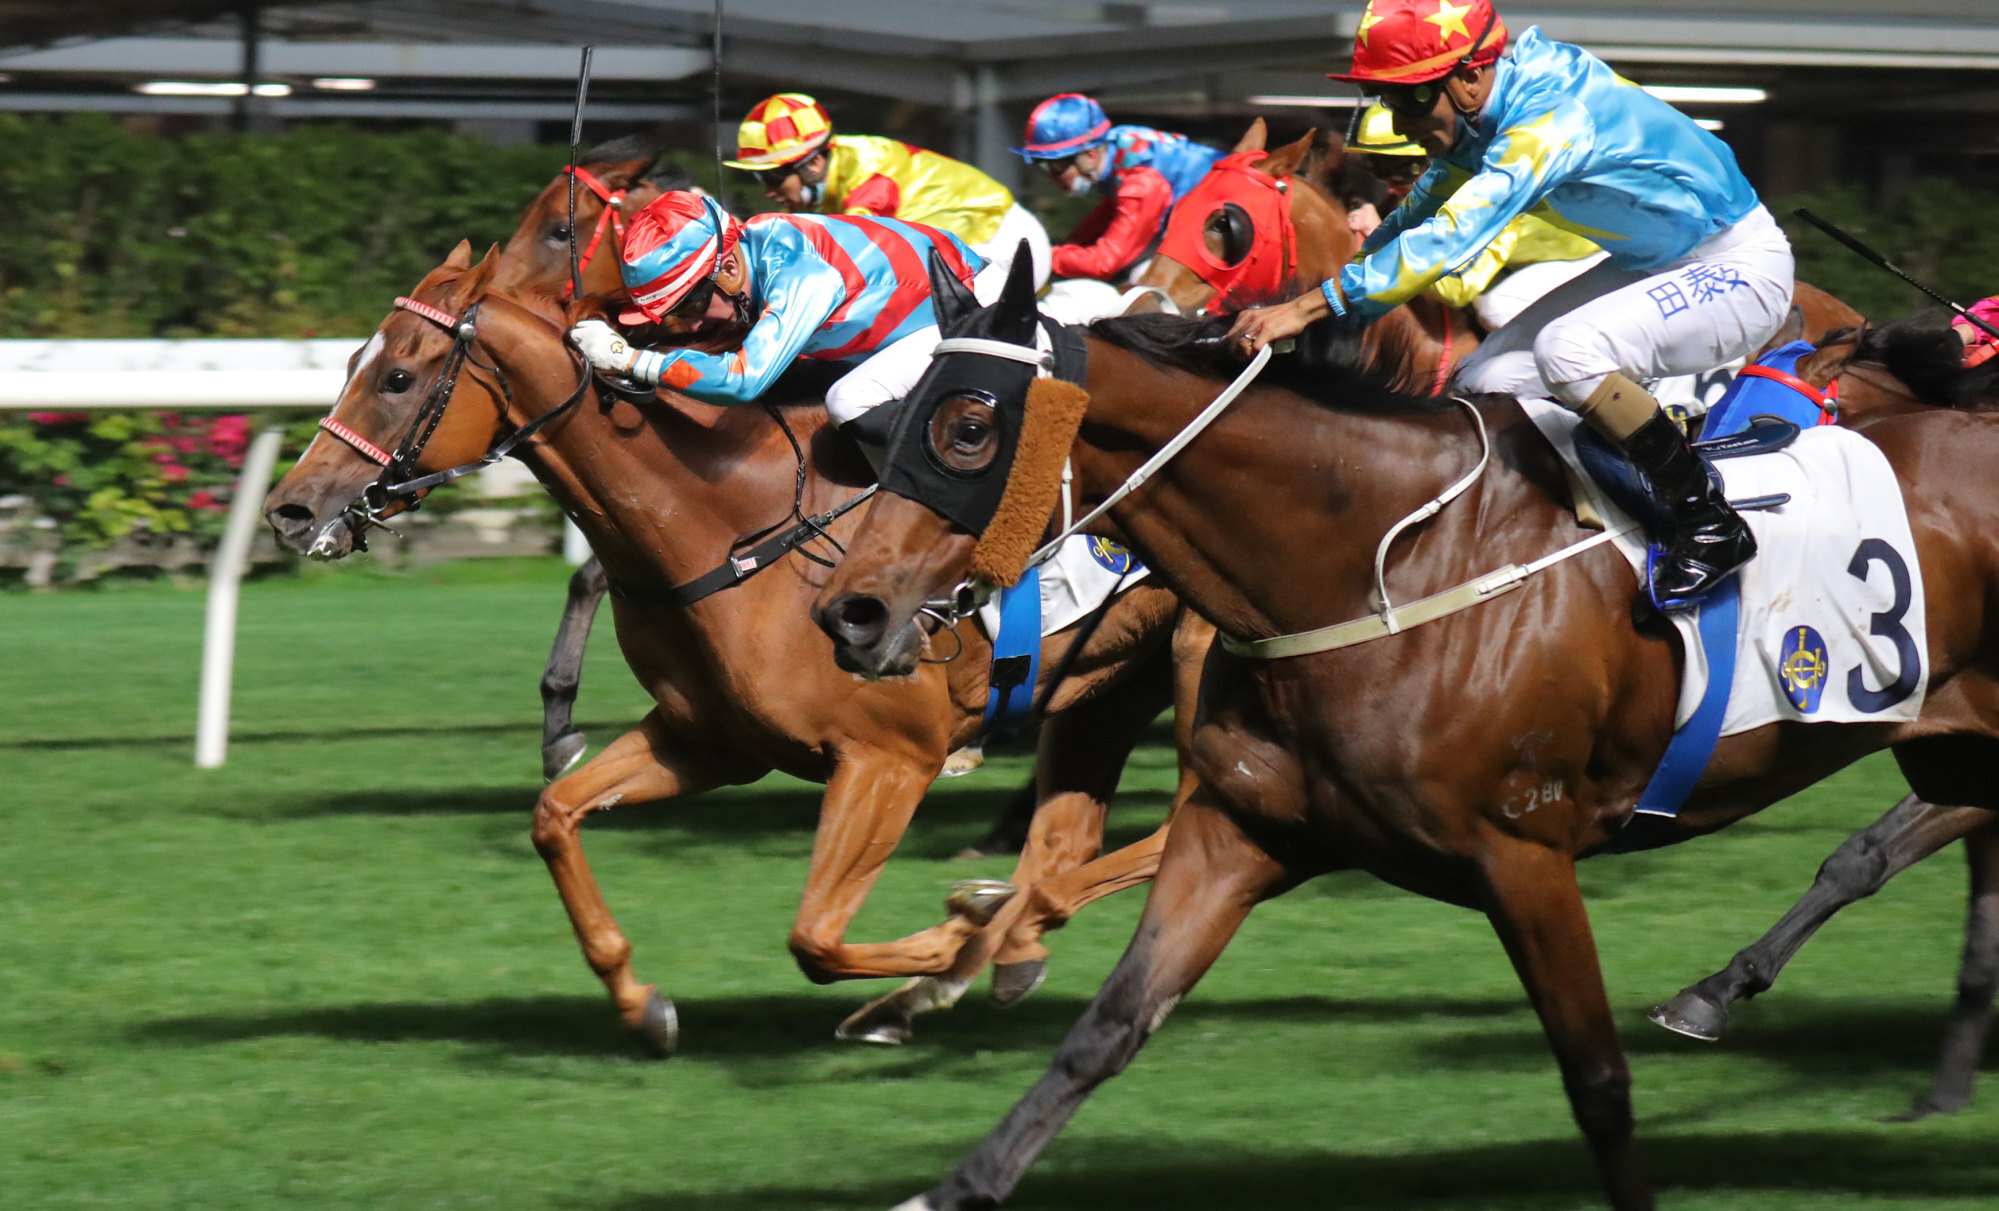 Ruan Maia drives Bulletproof through to win at Happy Valley on Wednesday night.